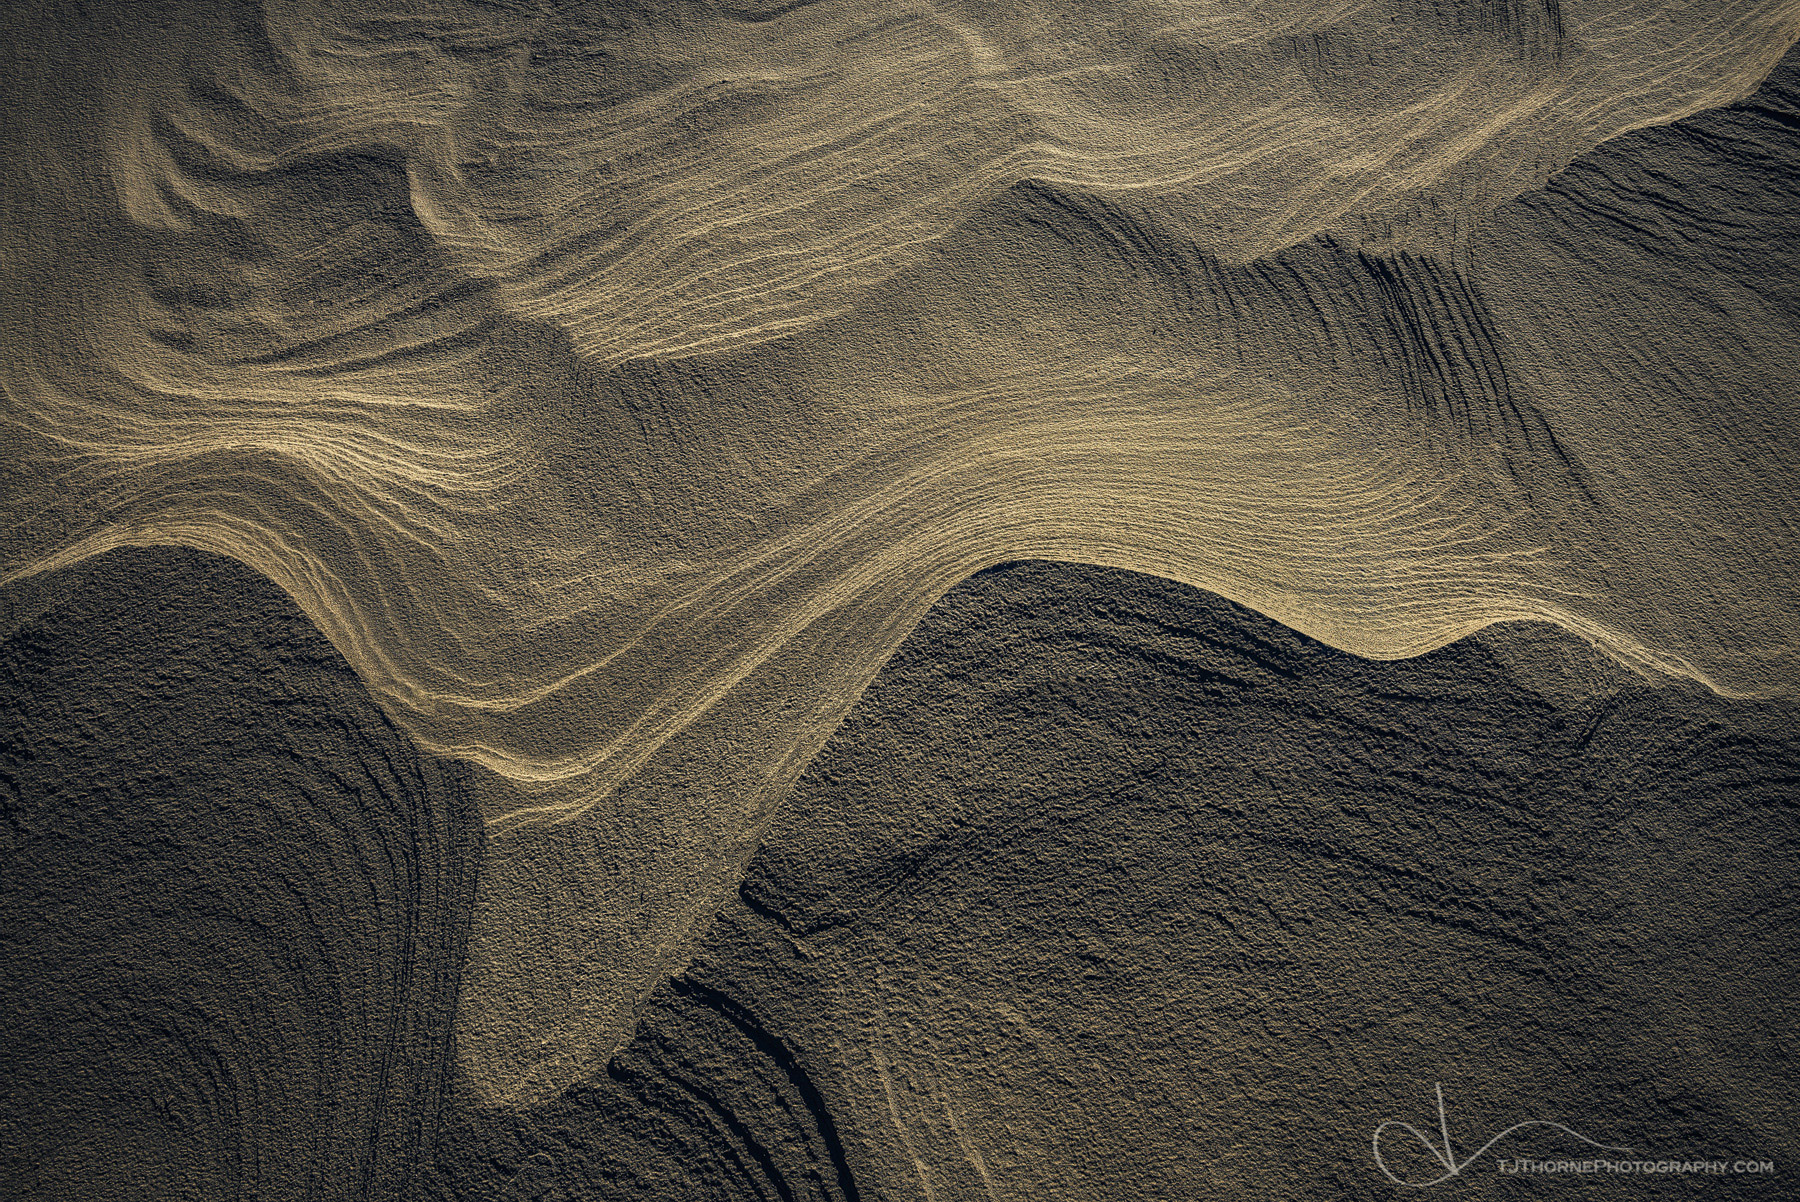 abstract, sandstone, death valley, california, desert, photo